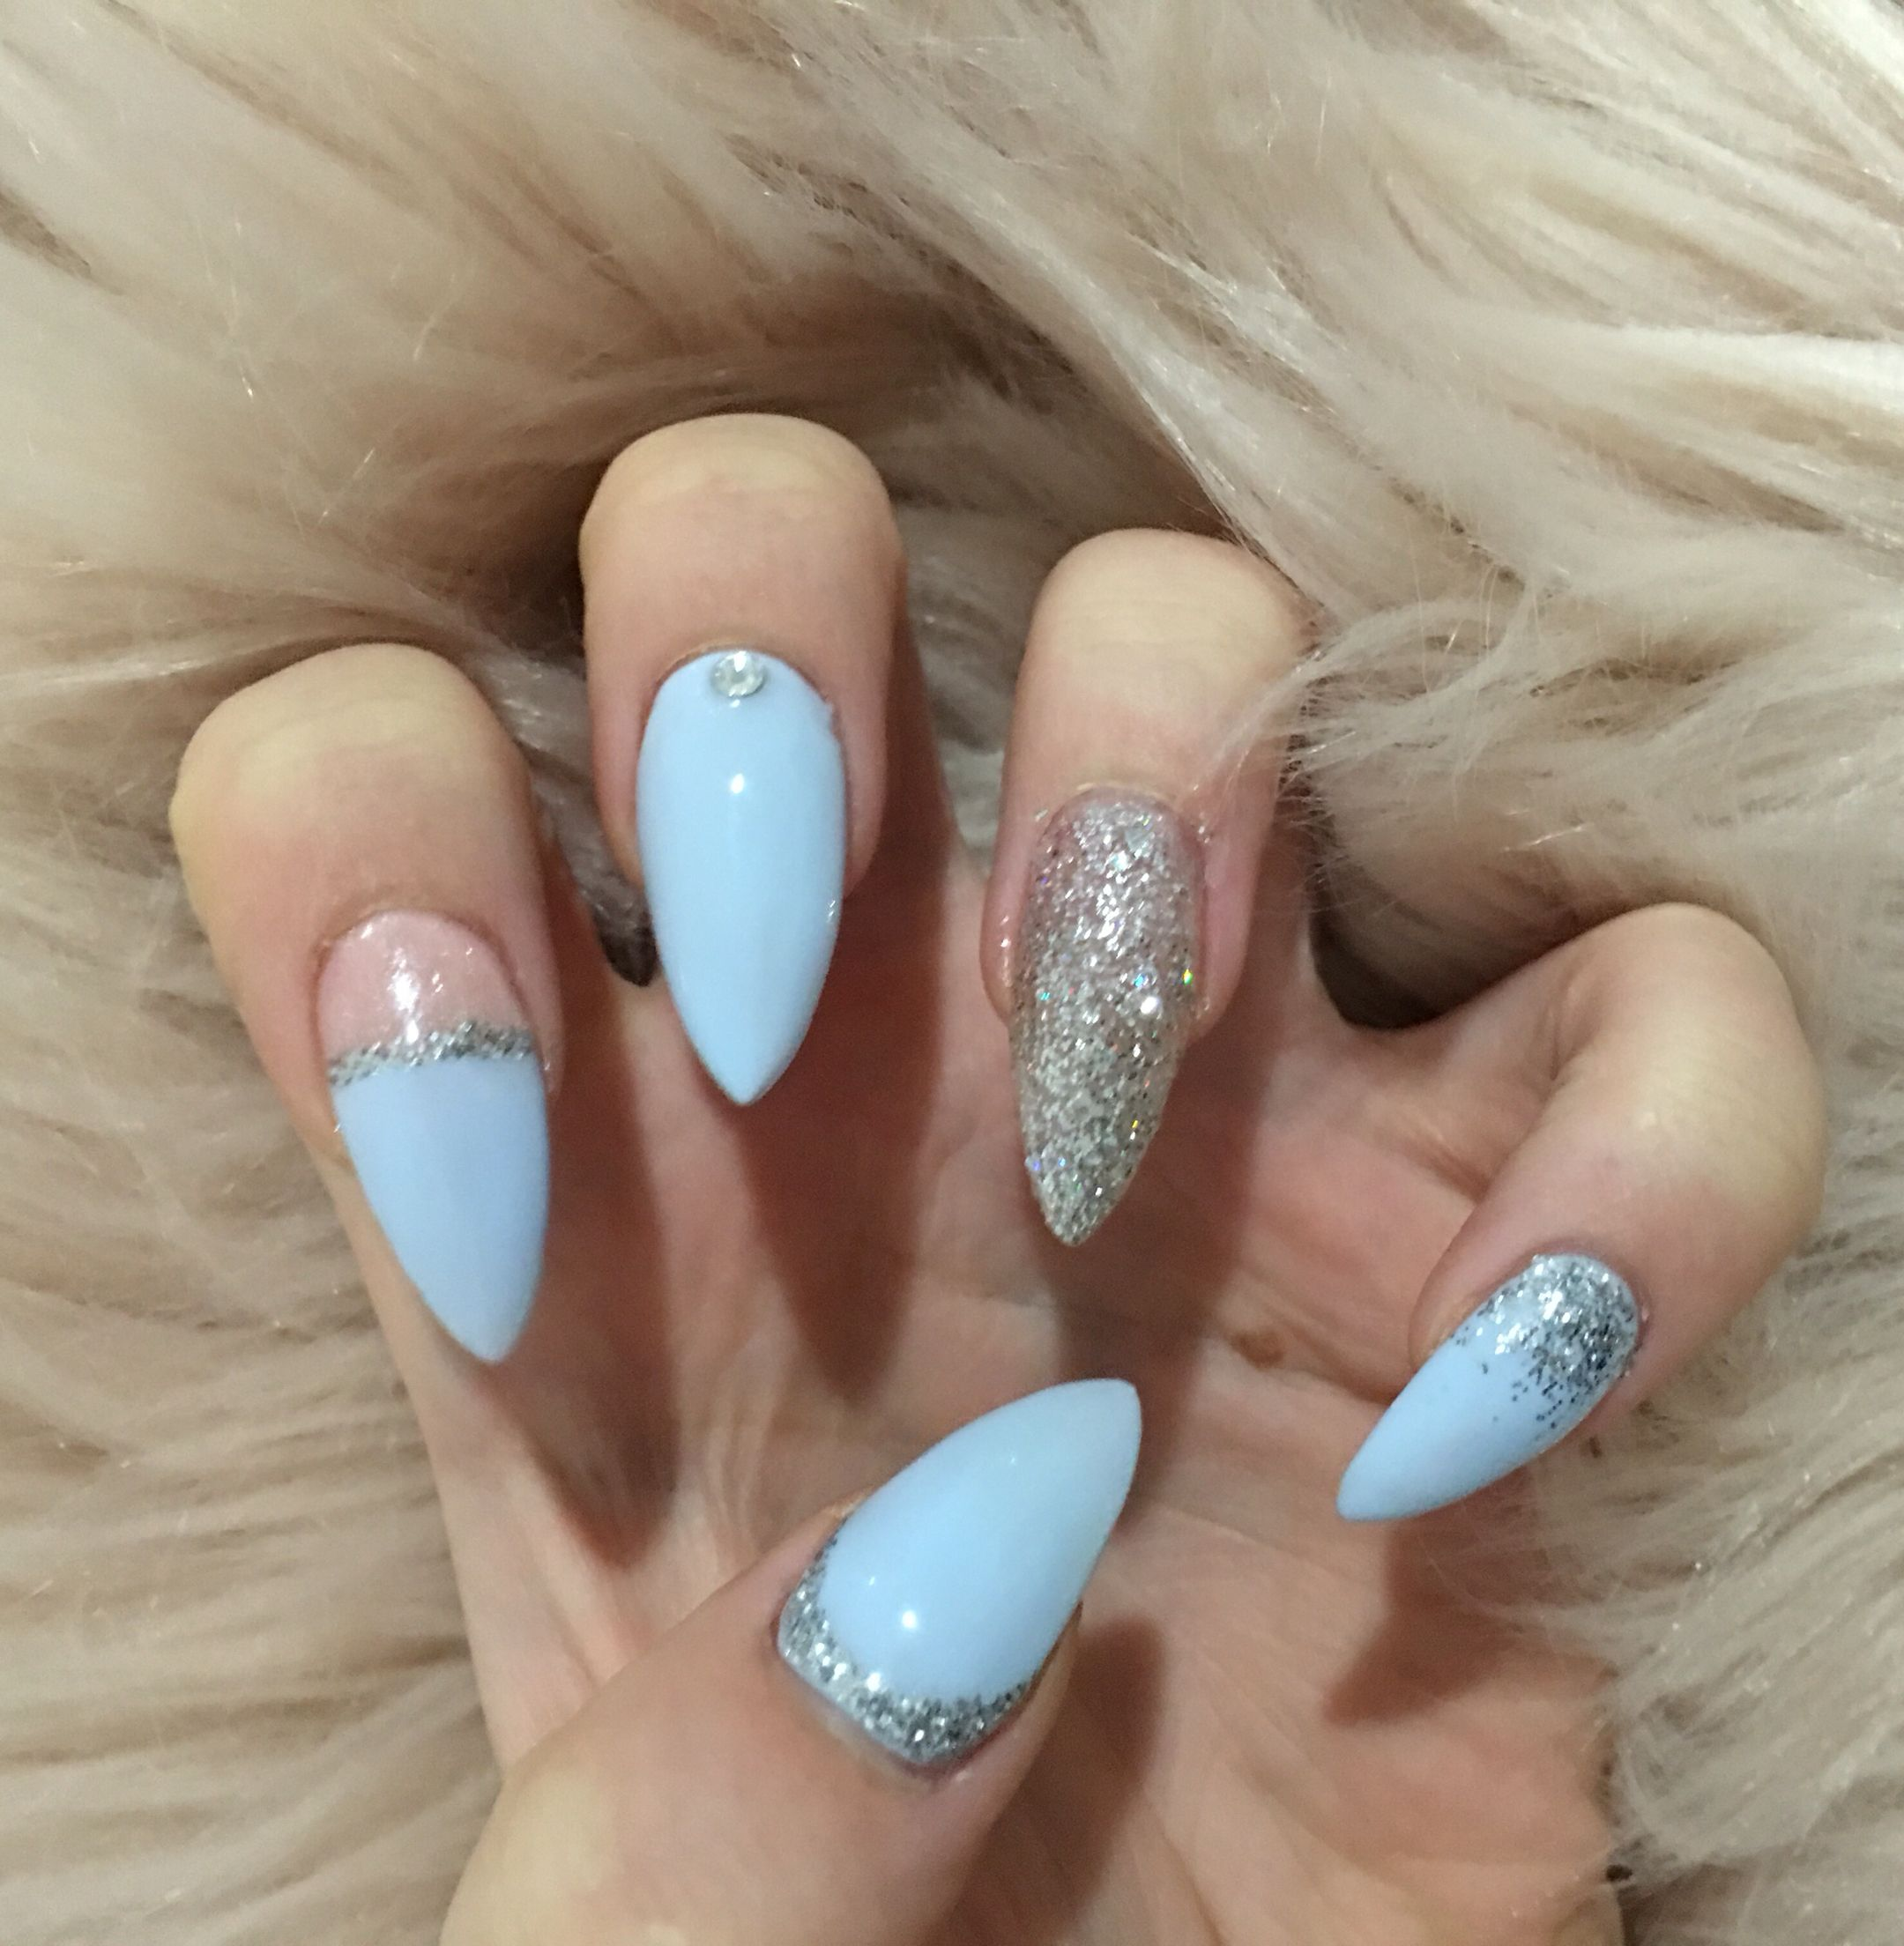 Baby Blue Almond Nails Almond Nails Designs Nails Nail Designs Glitter